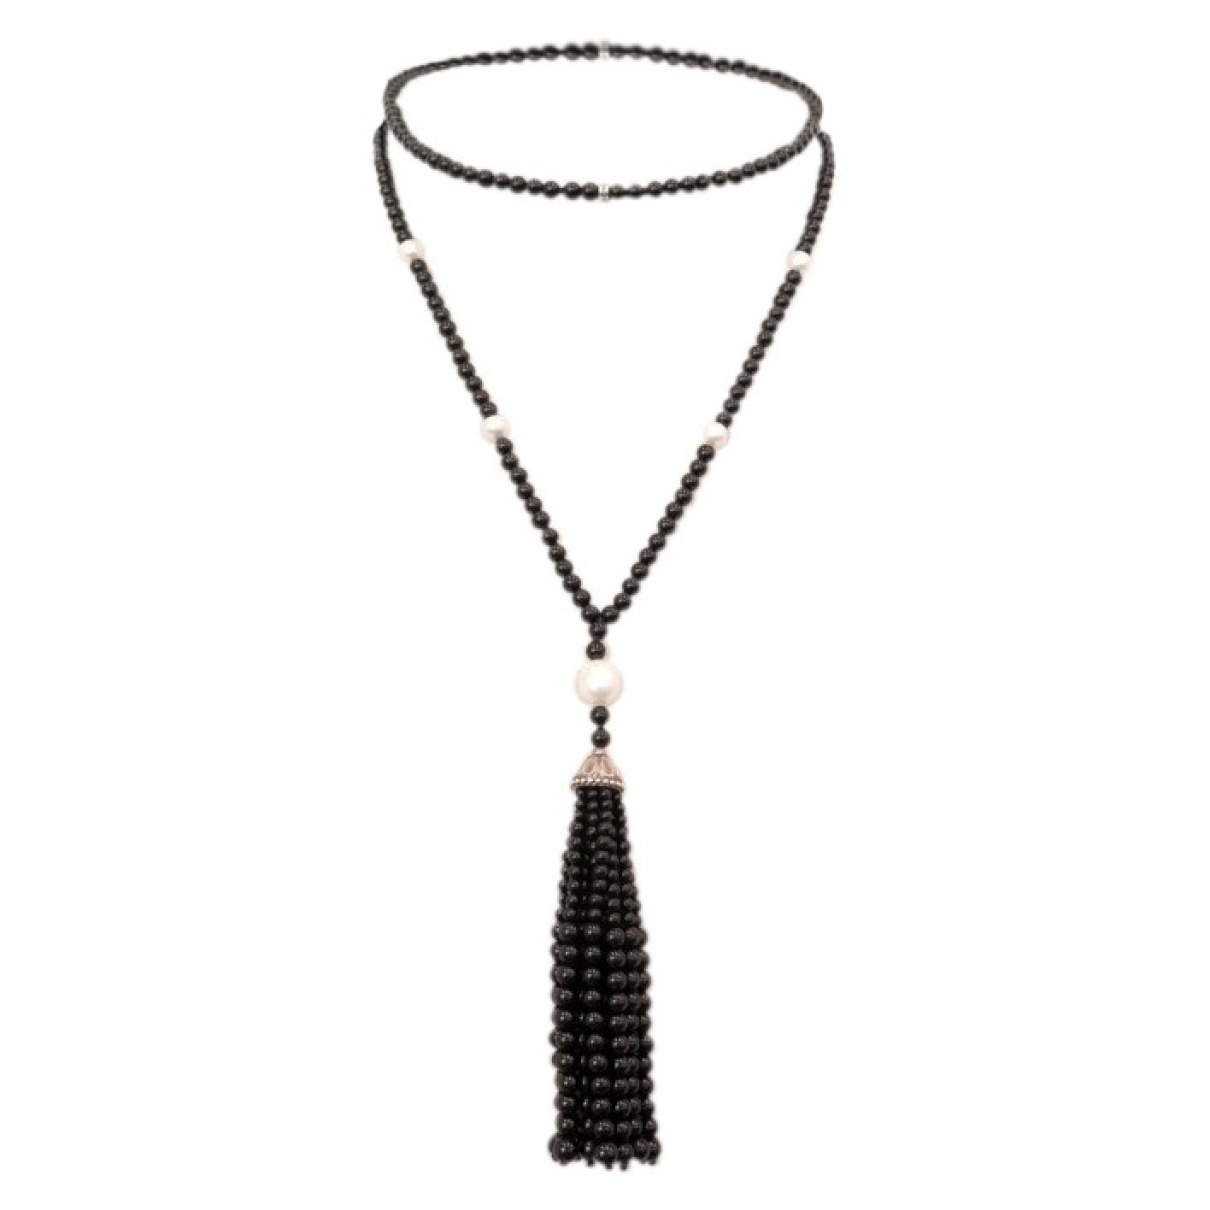 Tiffany & Co \N Black Pearls necklace for Women \N